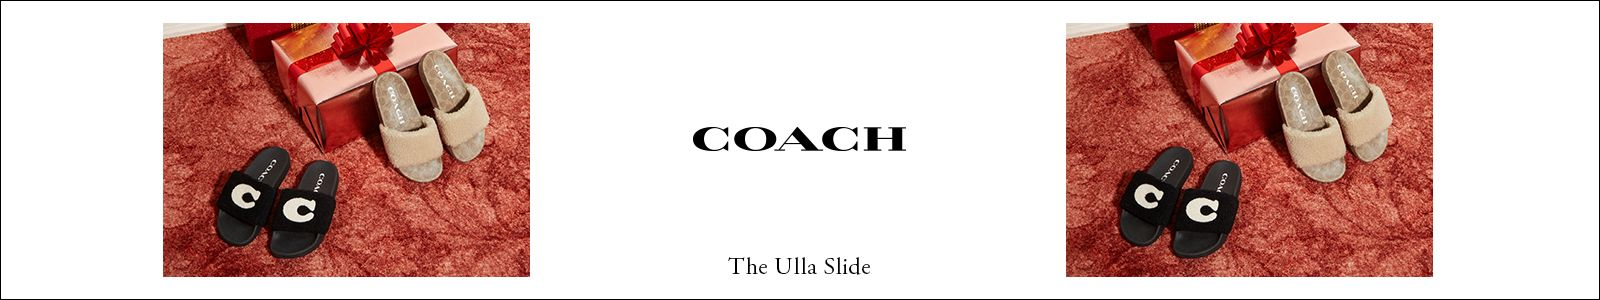 Coach, The Ulla Slide